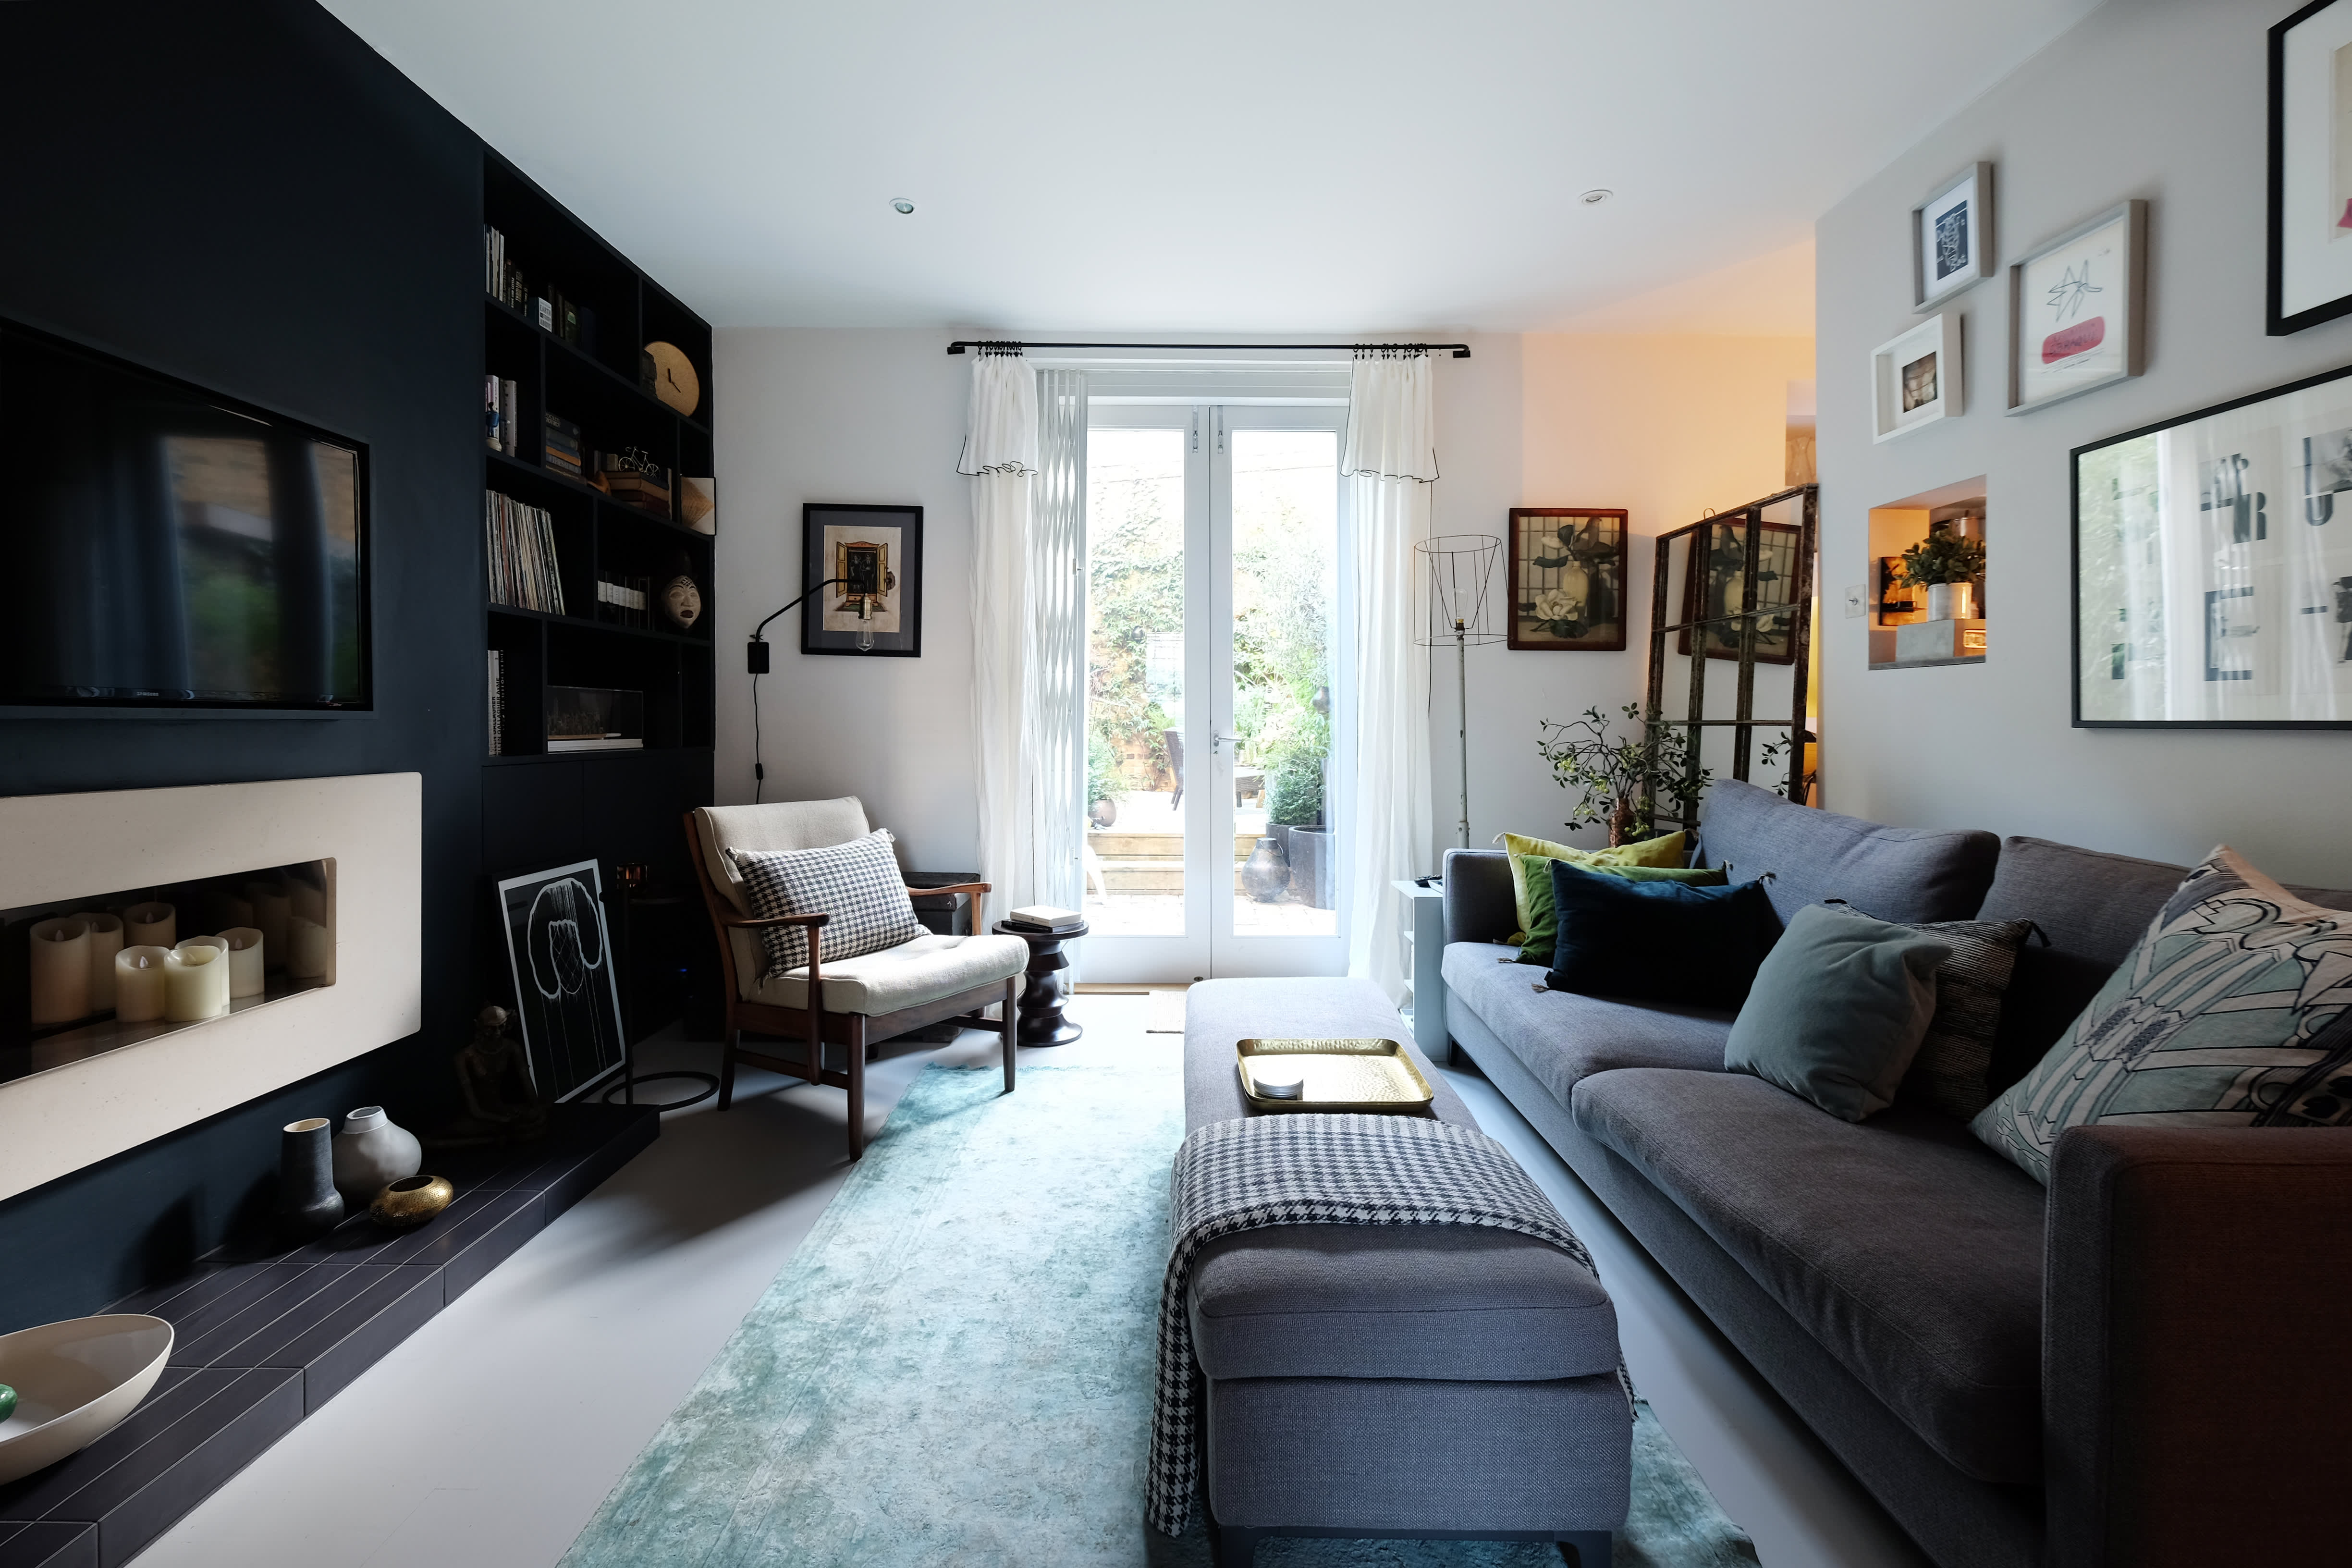 A Chic Small Space in the Heart of London